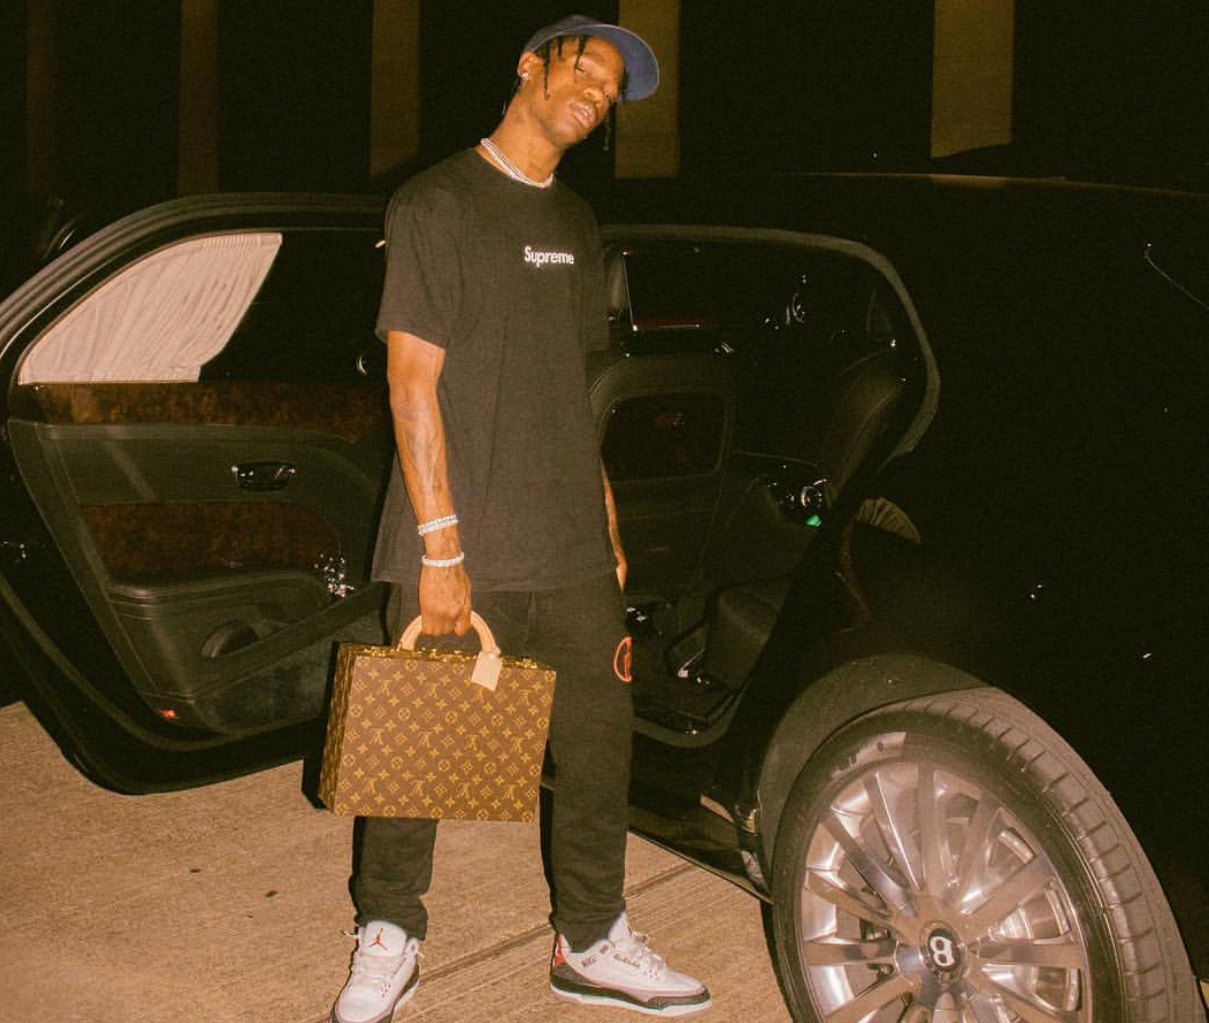 SPOTTED: Travis Scott Carries LV Briefcase while in Supreme & Jordan 3's